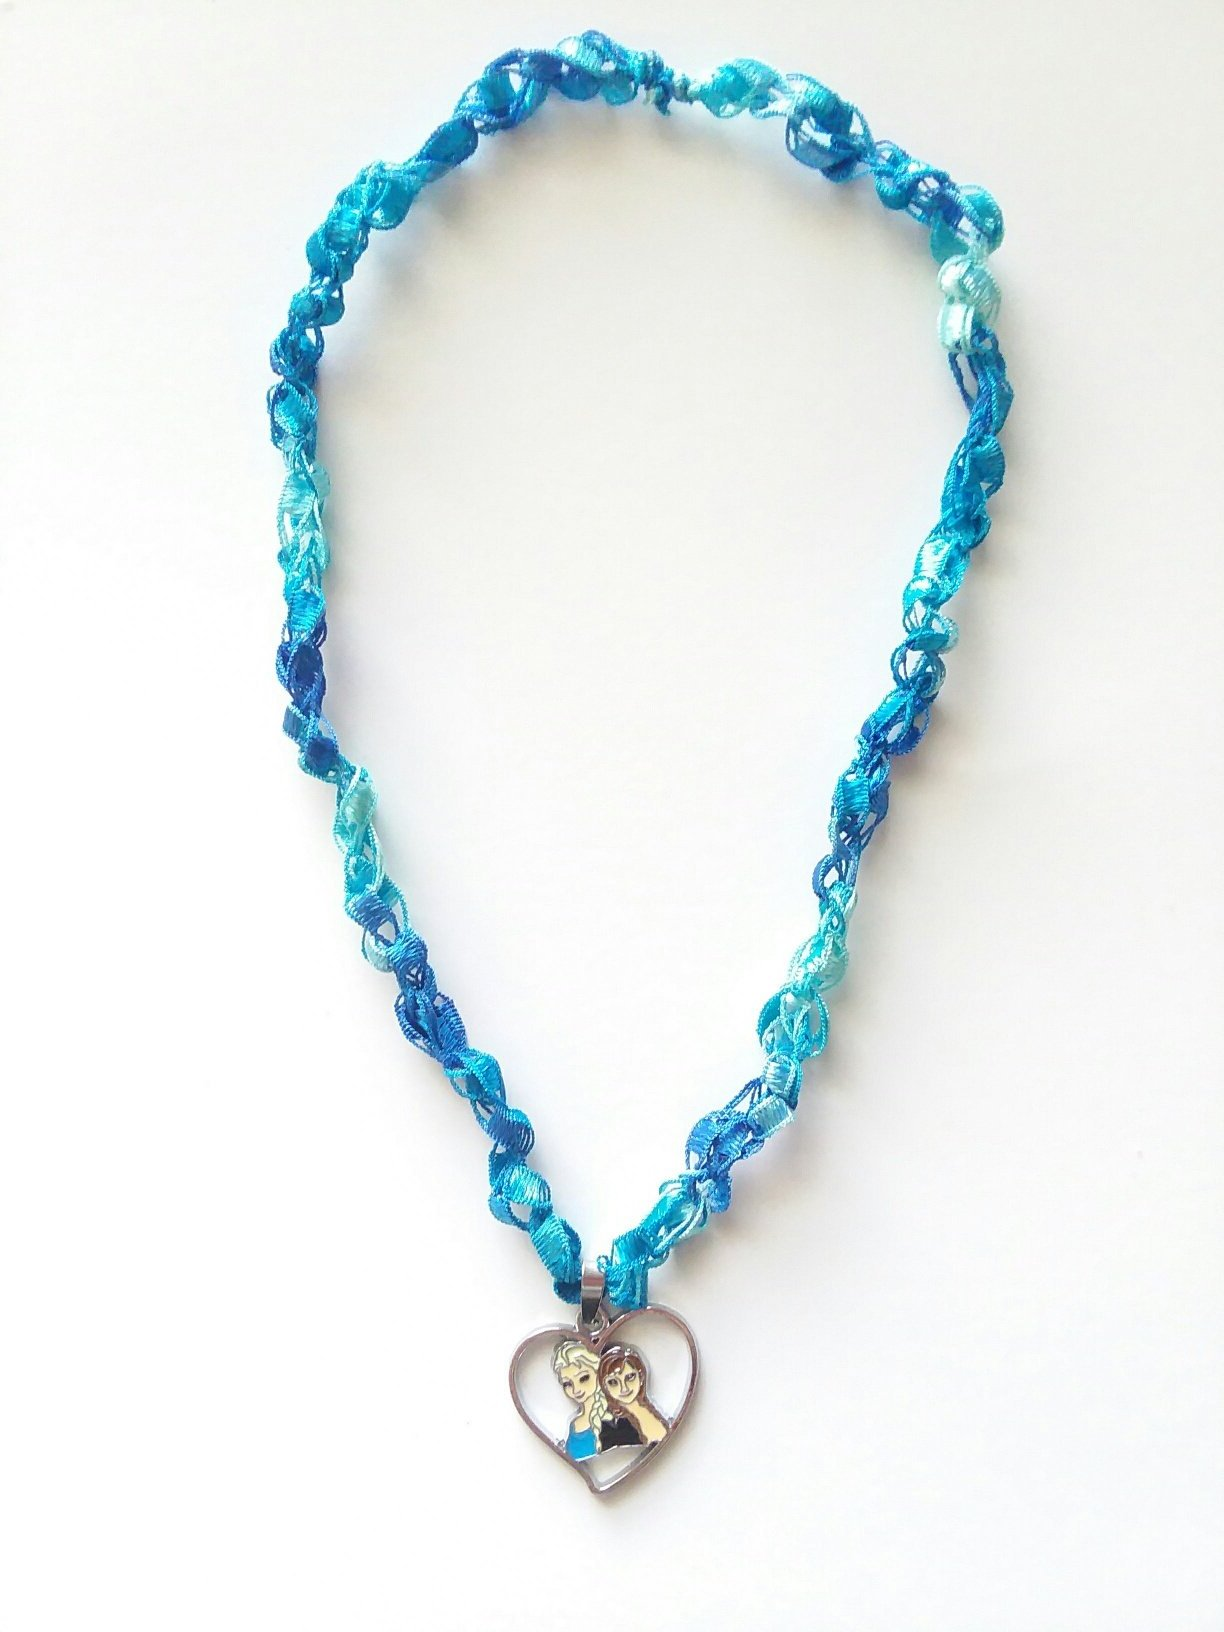 Anna & Elsa Heart Necklace with Crocheted Yarn Chain